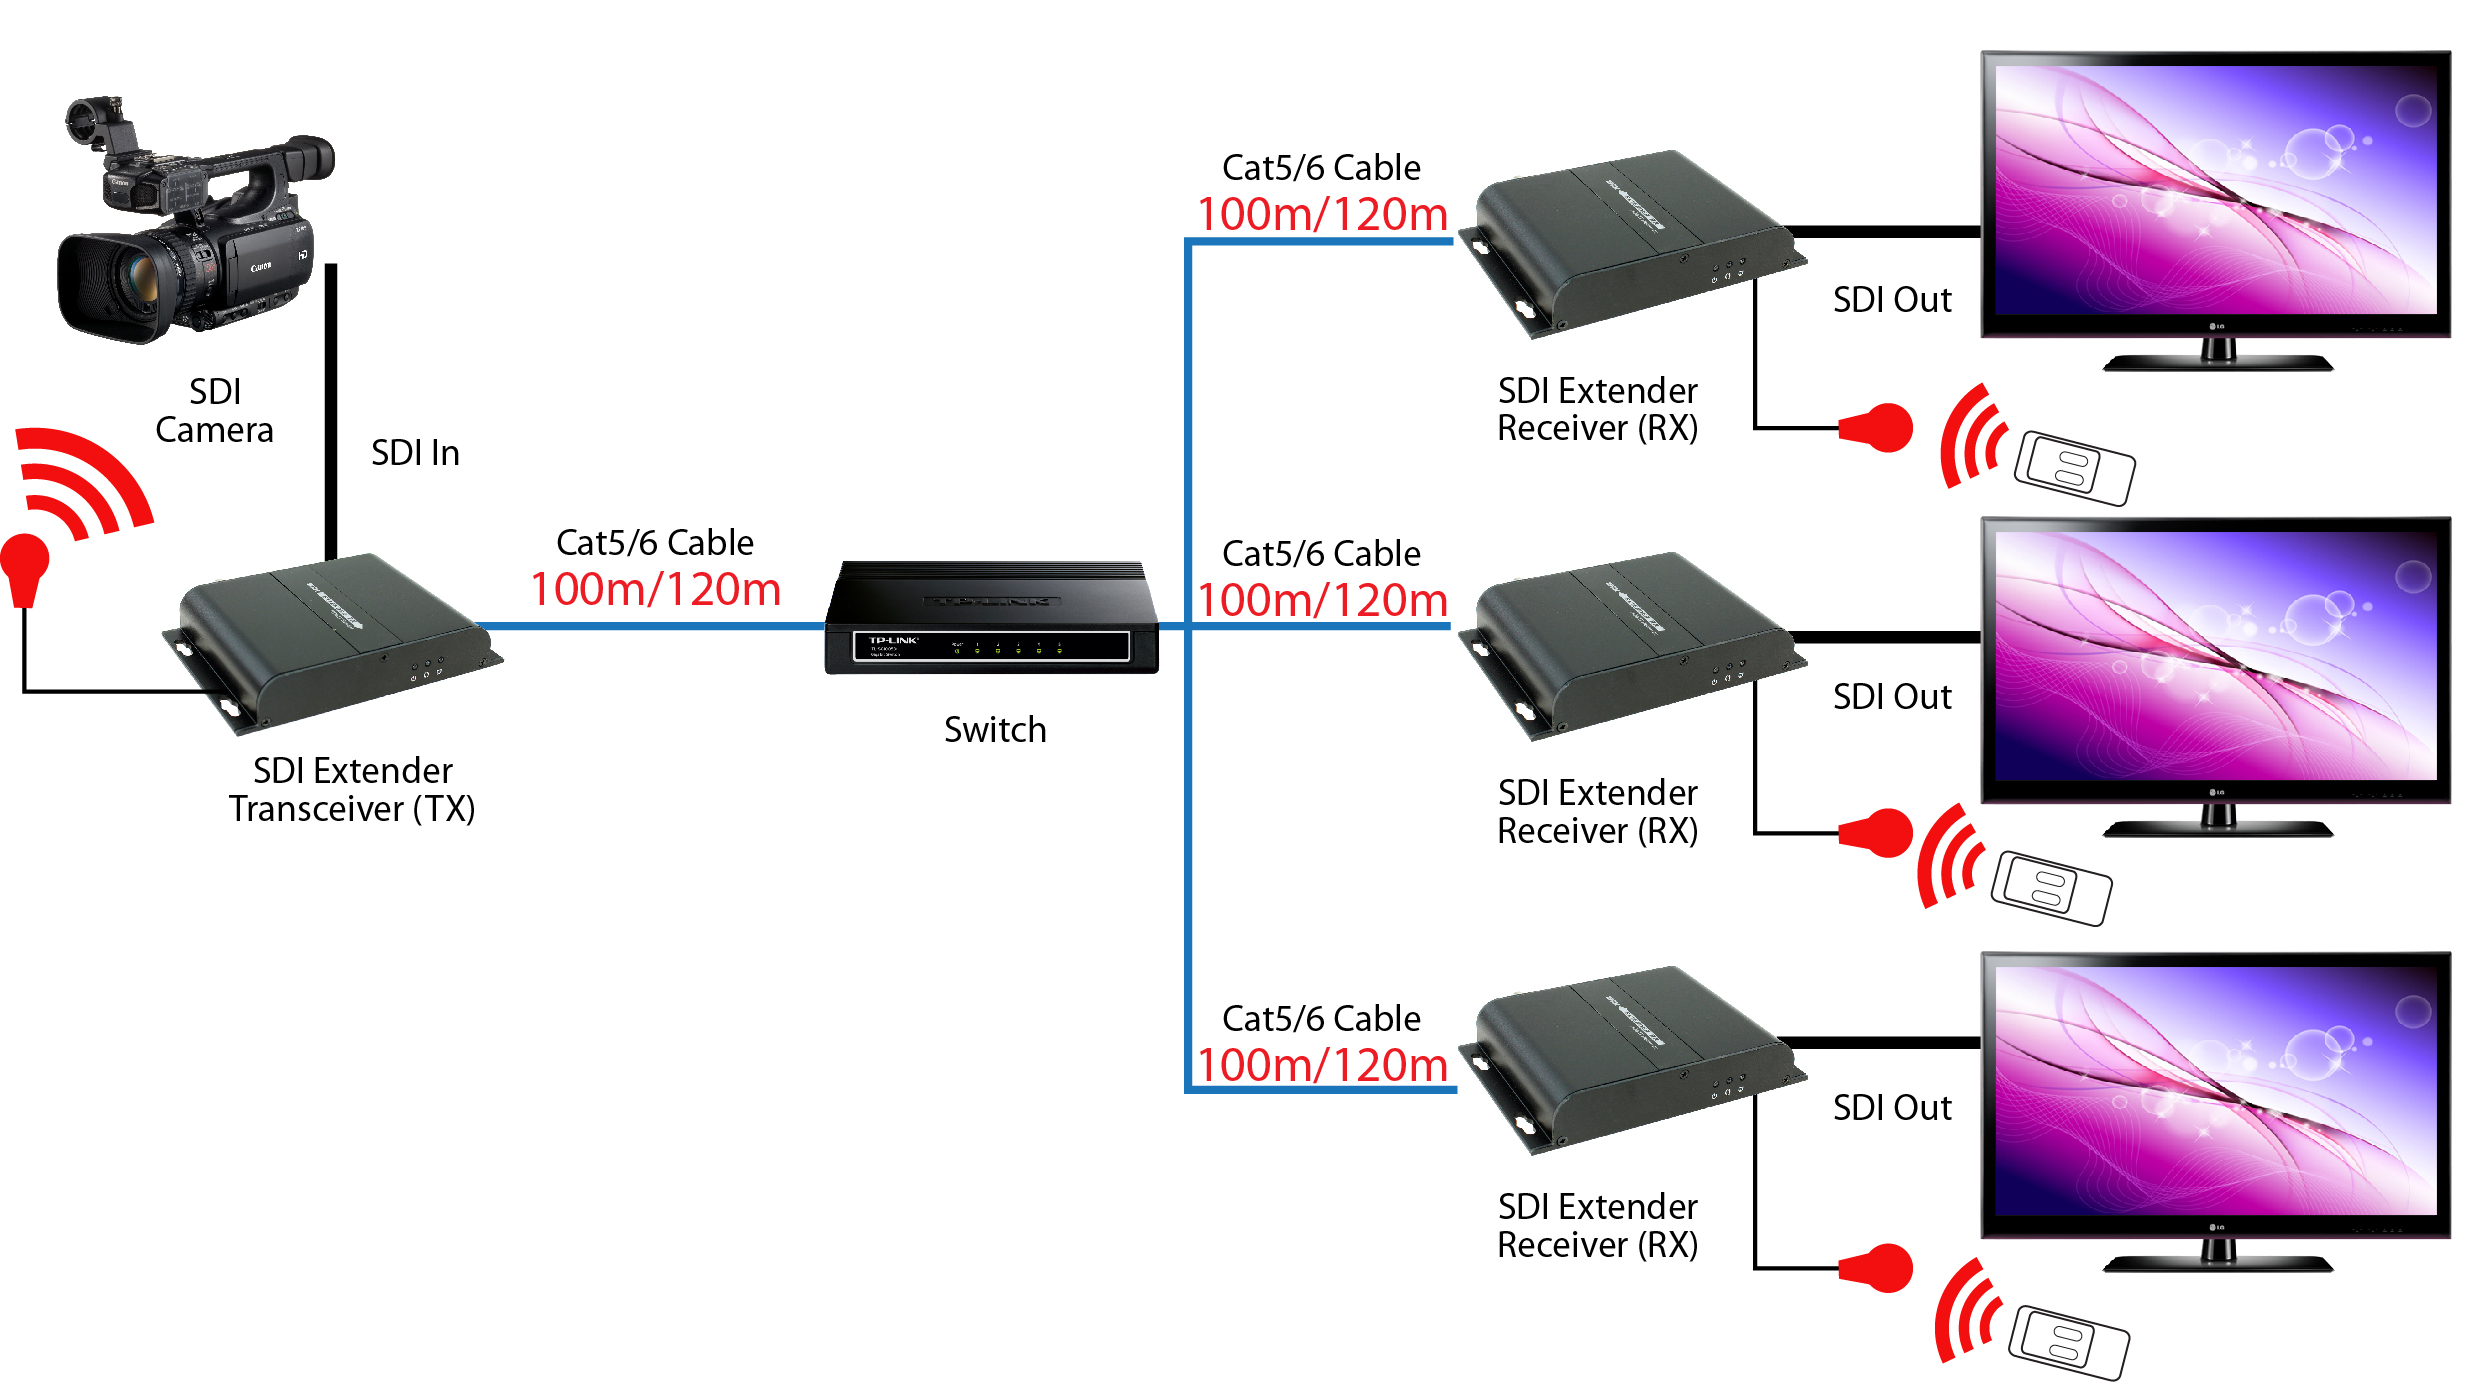 hdbitt sdi extender over ethernet w ir up to 394ft. Black Bedroom Furniture Sets. Home Design Ideas